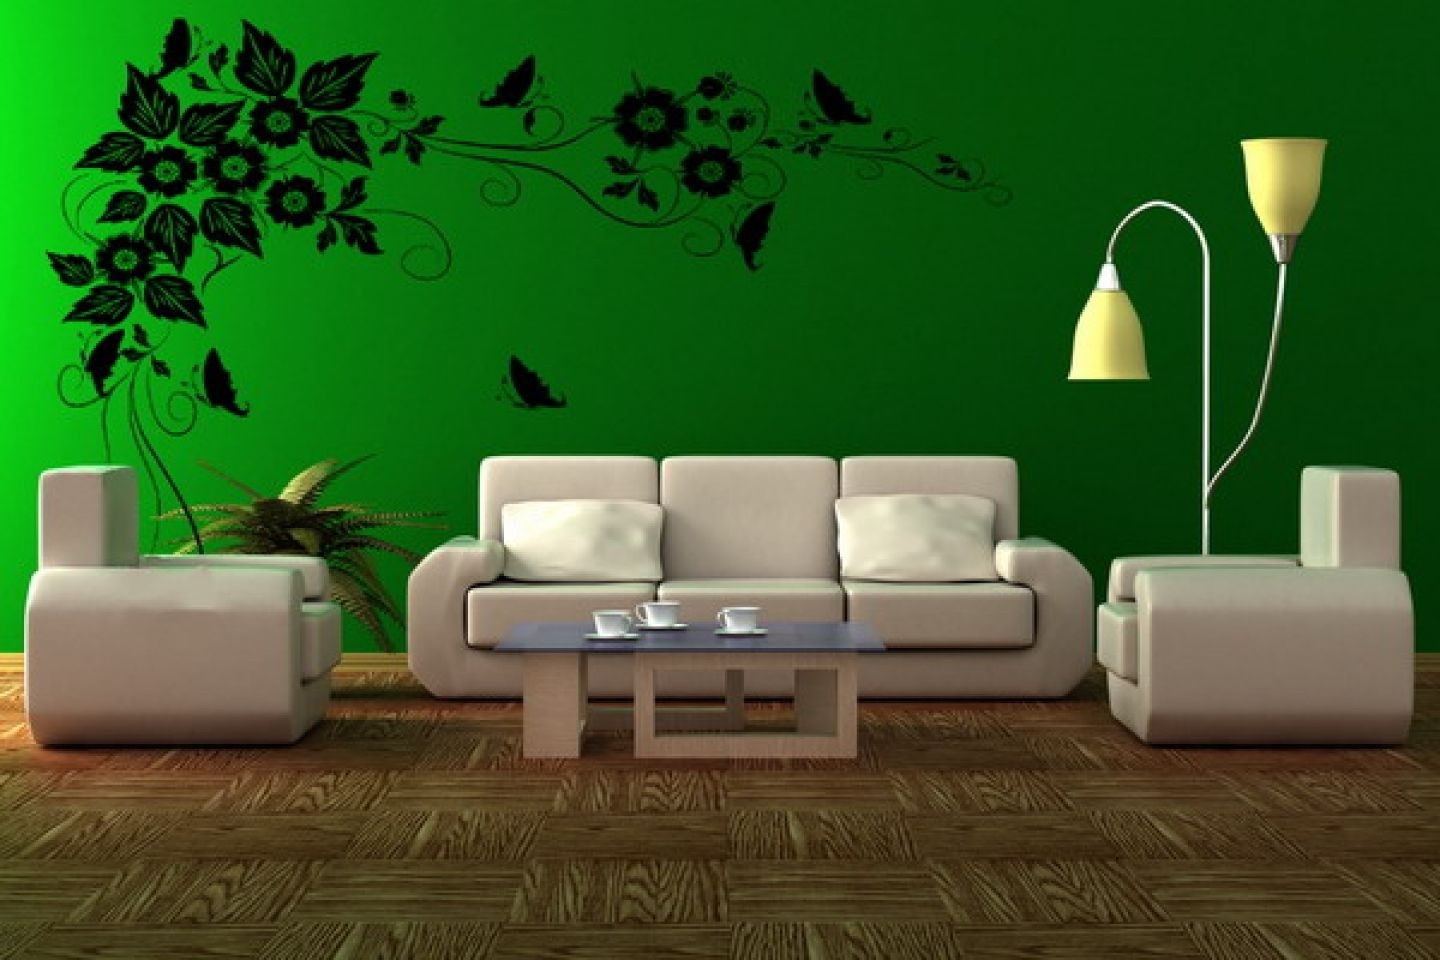 Green Living Room Ideas Beauteous Green Rooms Design .designs Green Green Bedroom Ideas Green Decorating Design